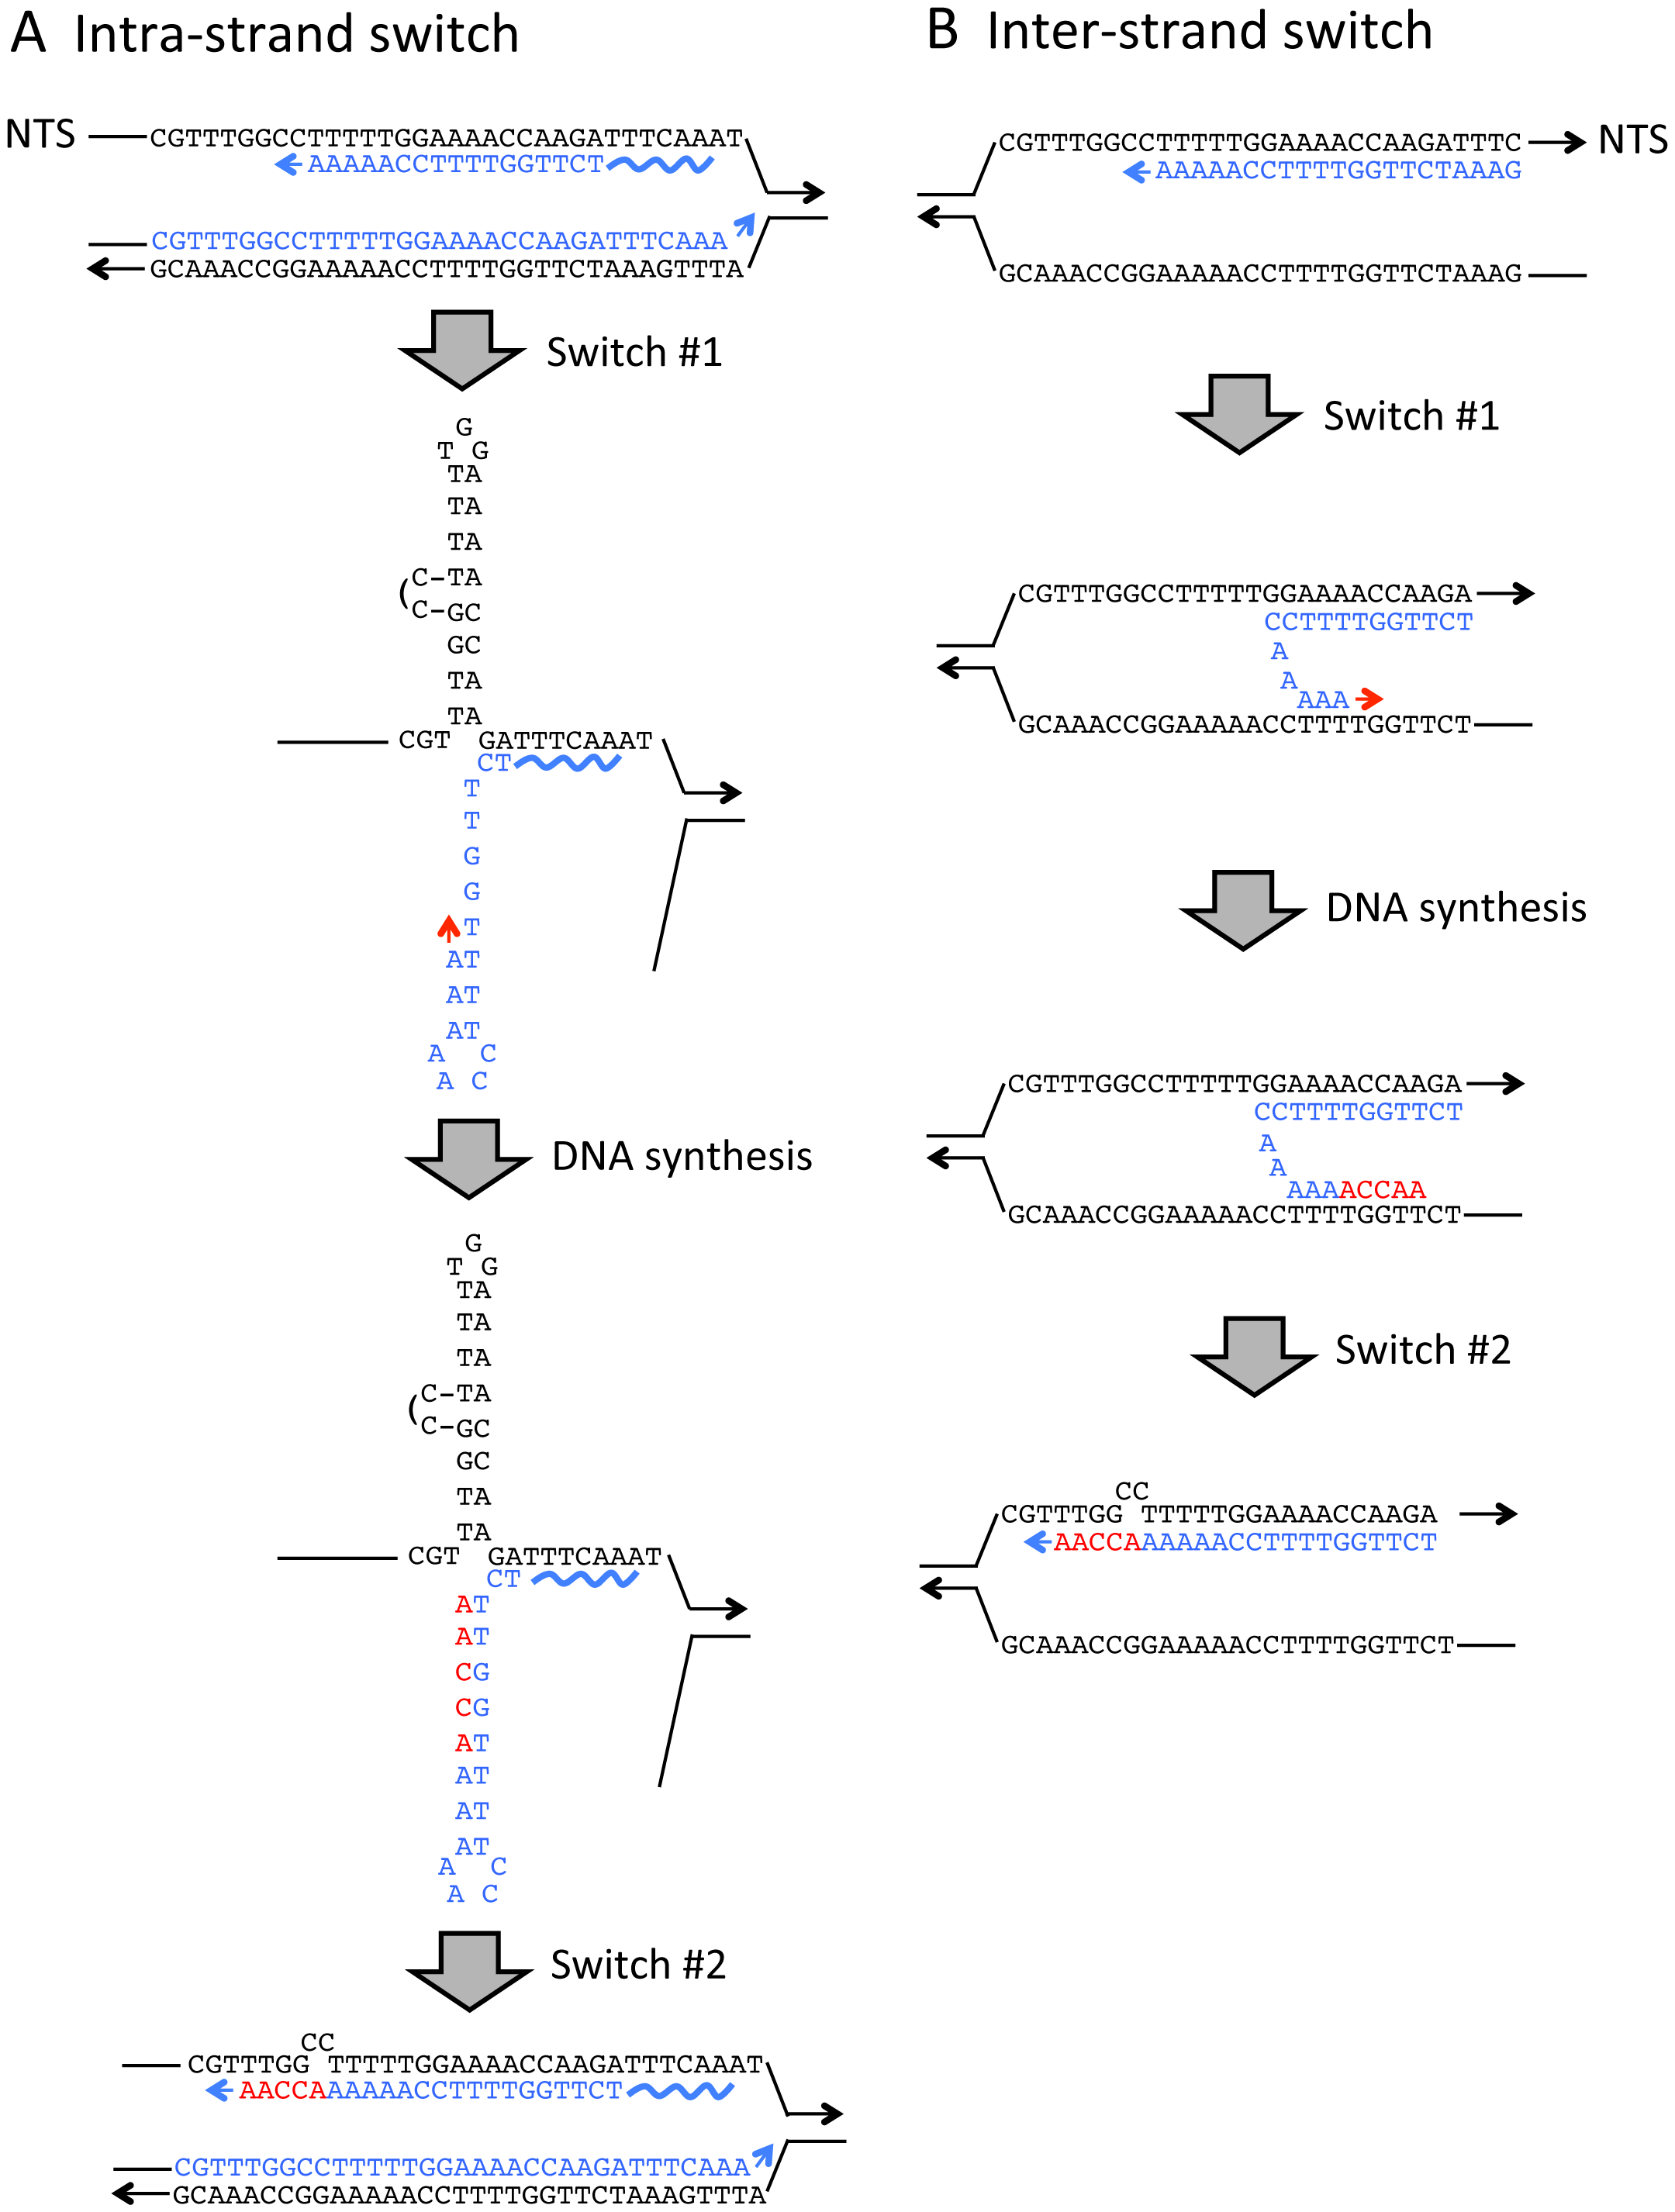 Strand switch models for generating QP mutations.